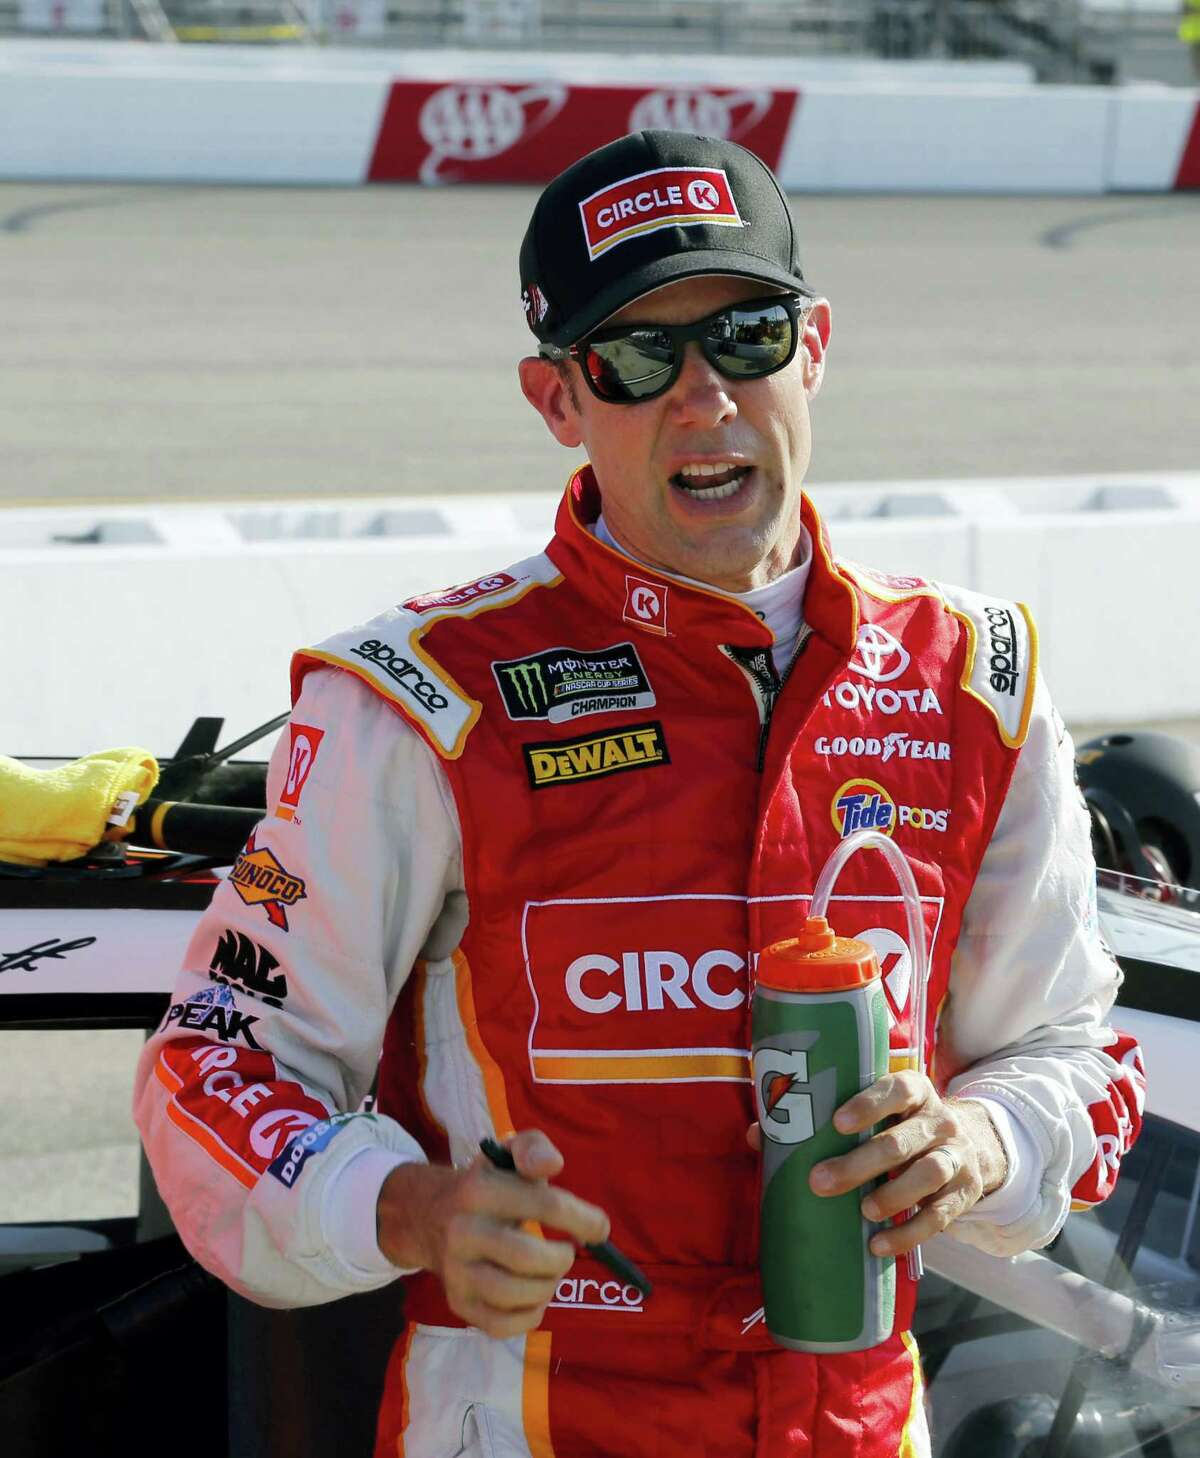 In this file photo, Matt Kenseth talks to one of his crew during qualifying for the NASCAR Cup Series auto race at Richmond International Raceway, in Richmond, Va. Kenseth said Friday he has no job lined up next year and likely has no future at Joe Gibbs Racing.